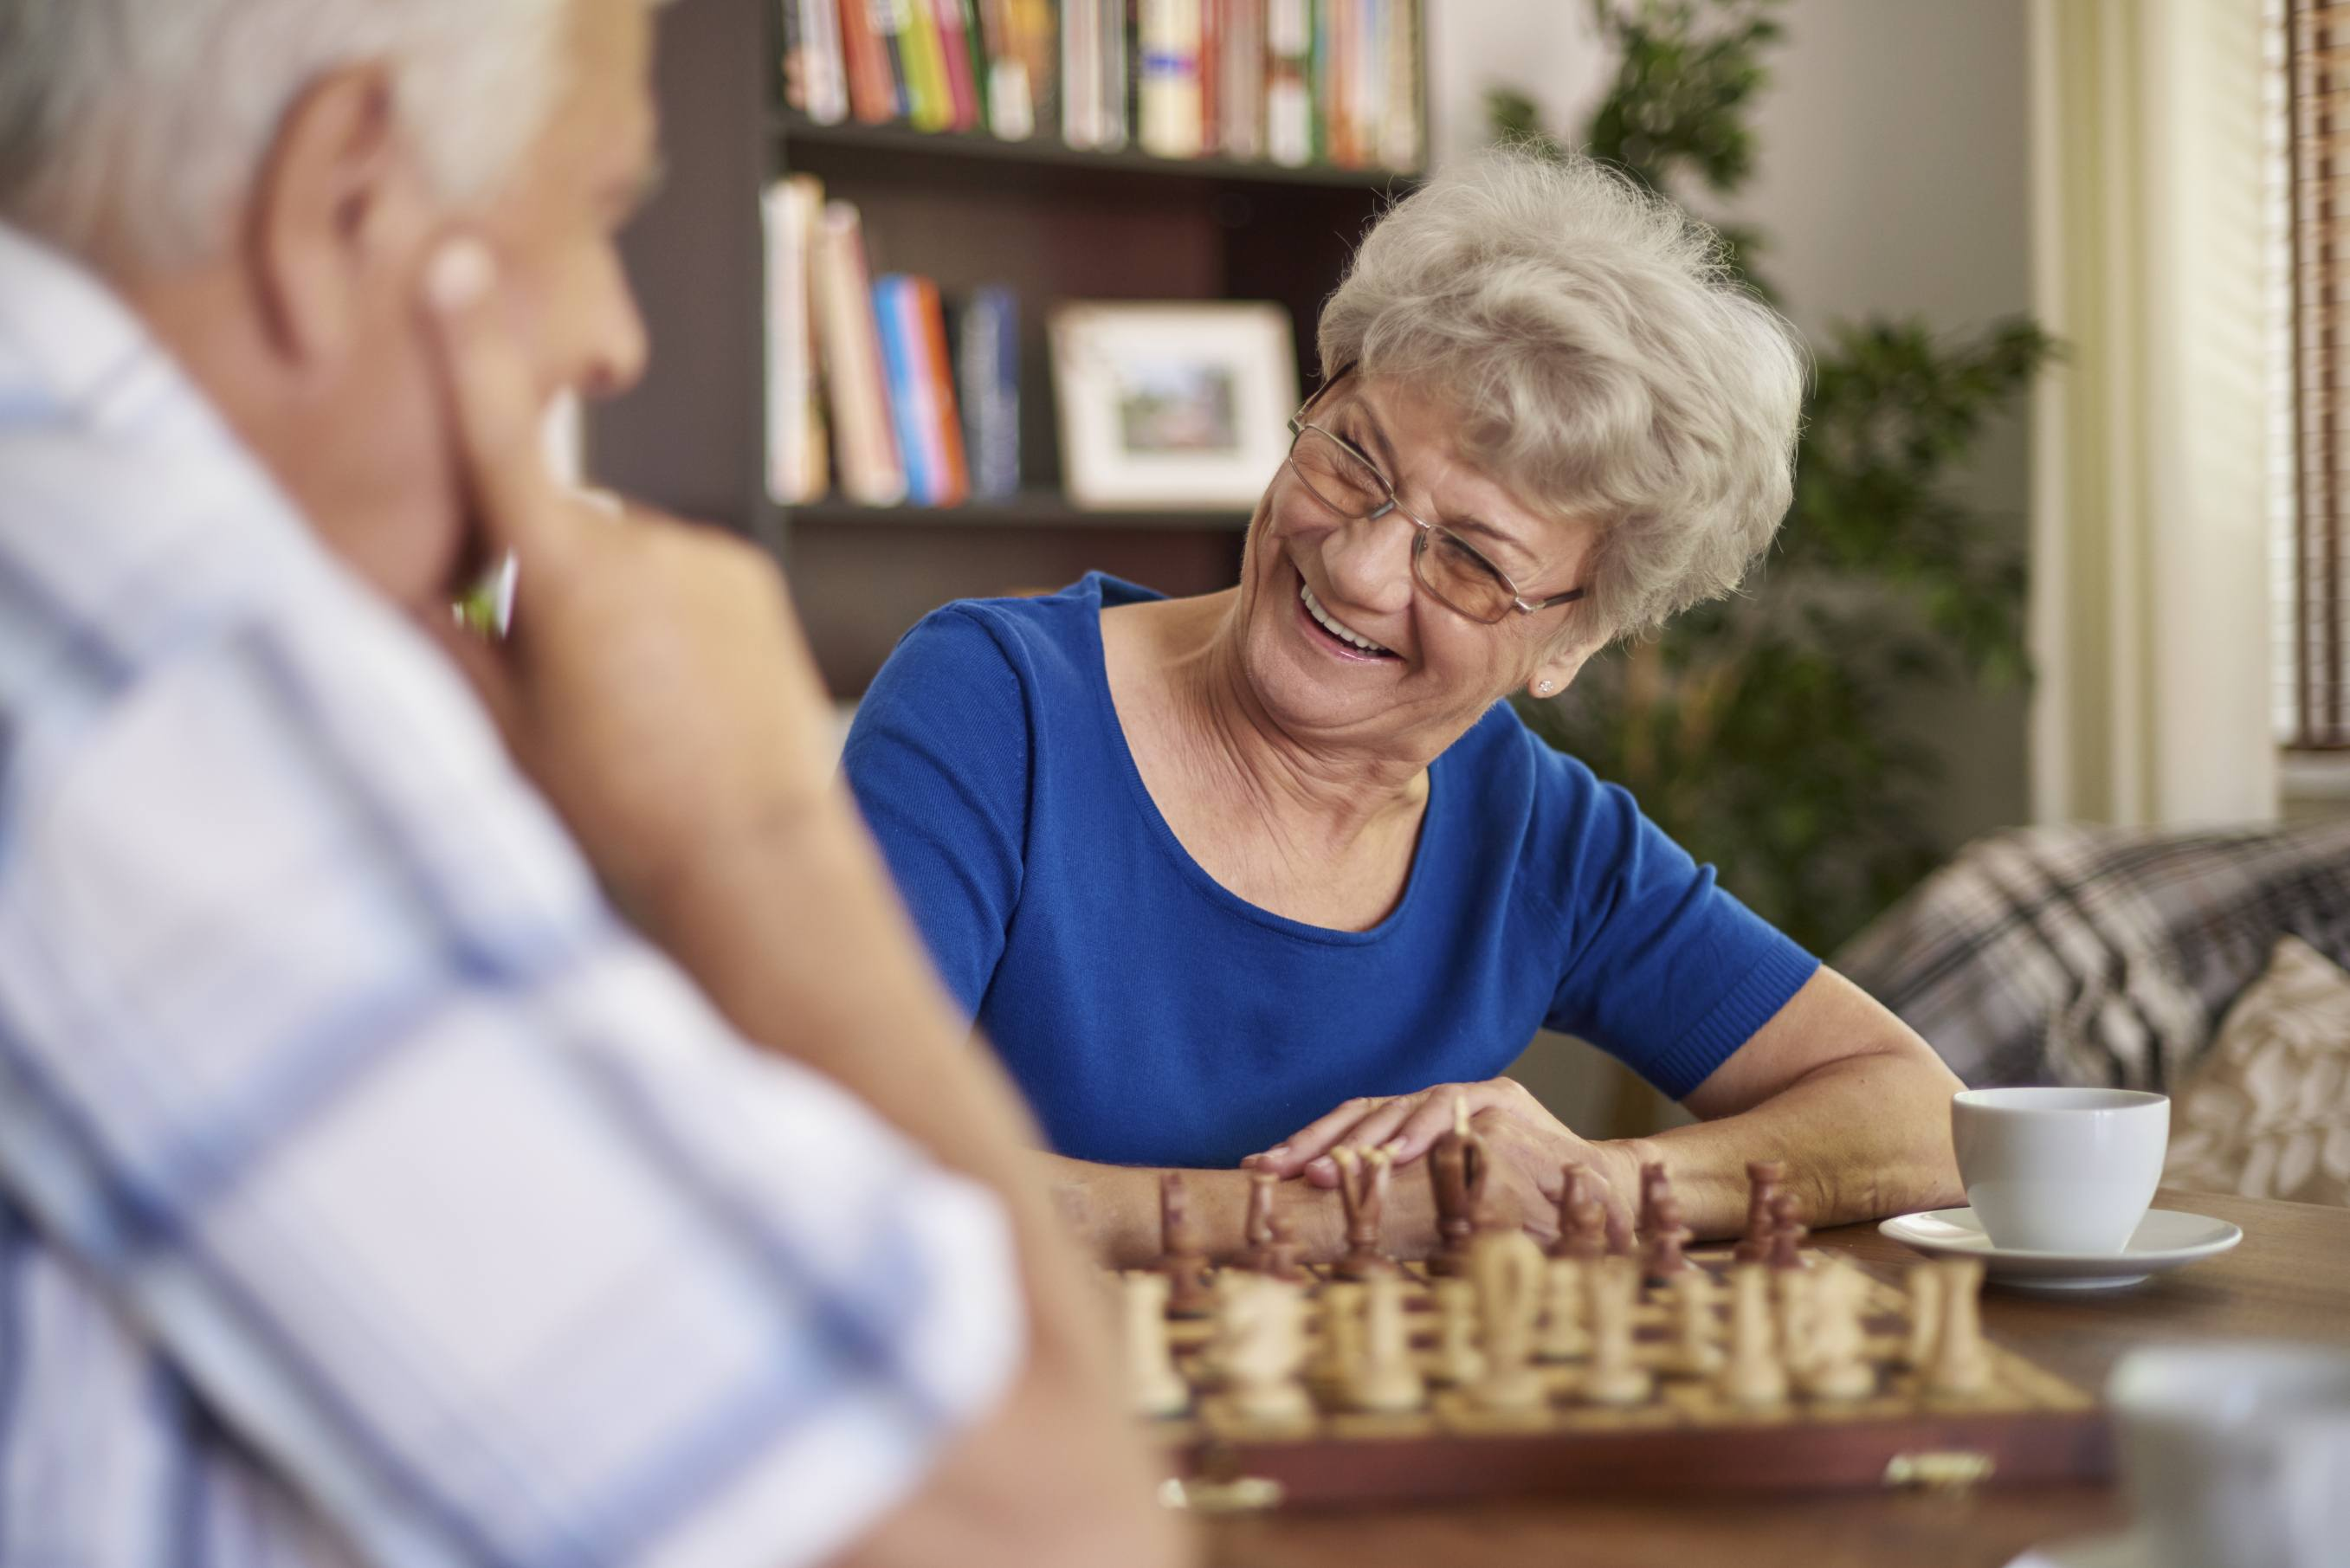 Playing chess in senior care